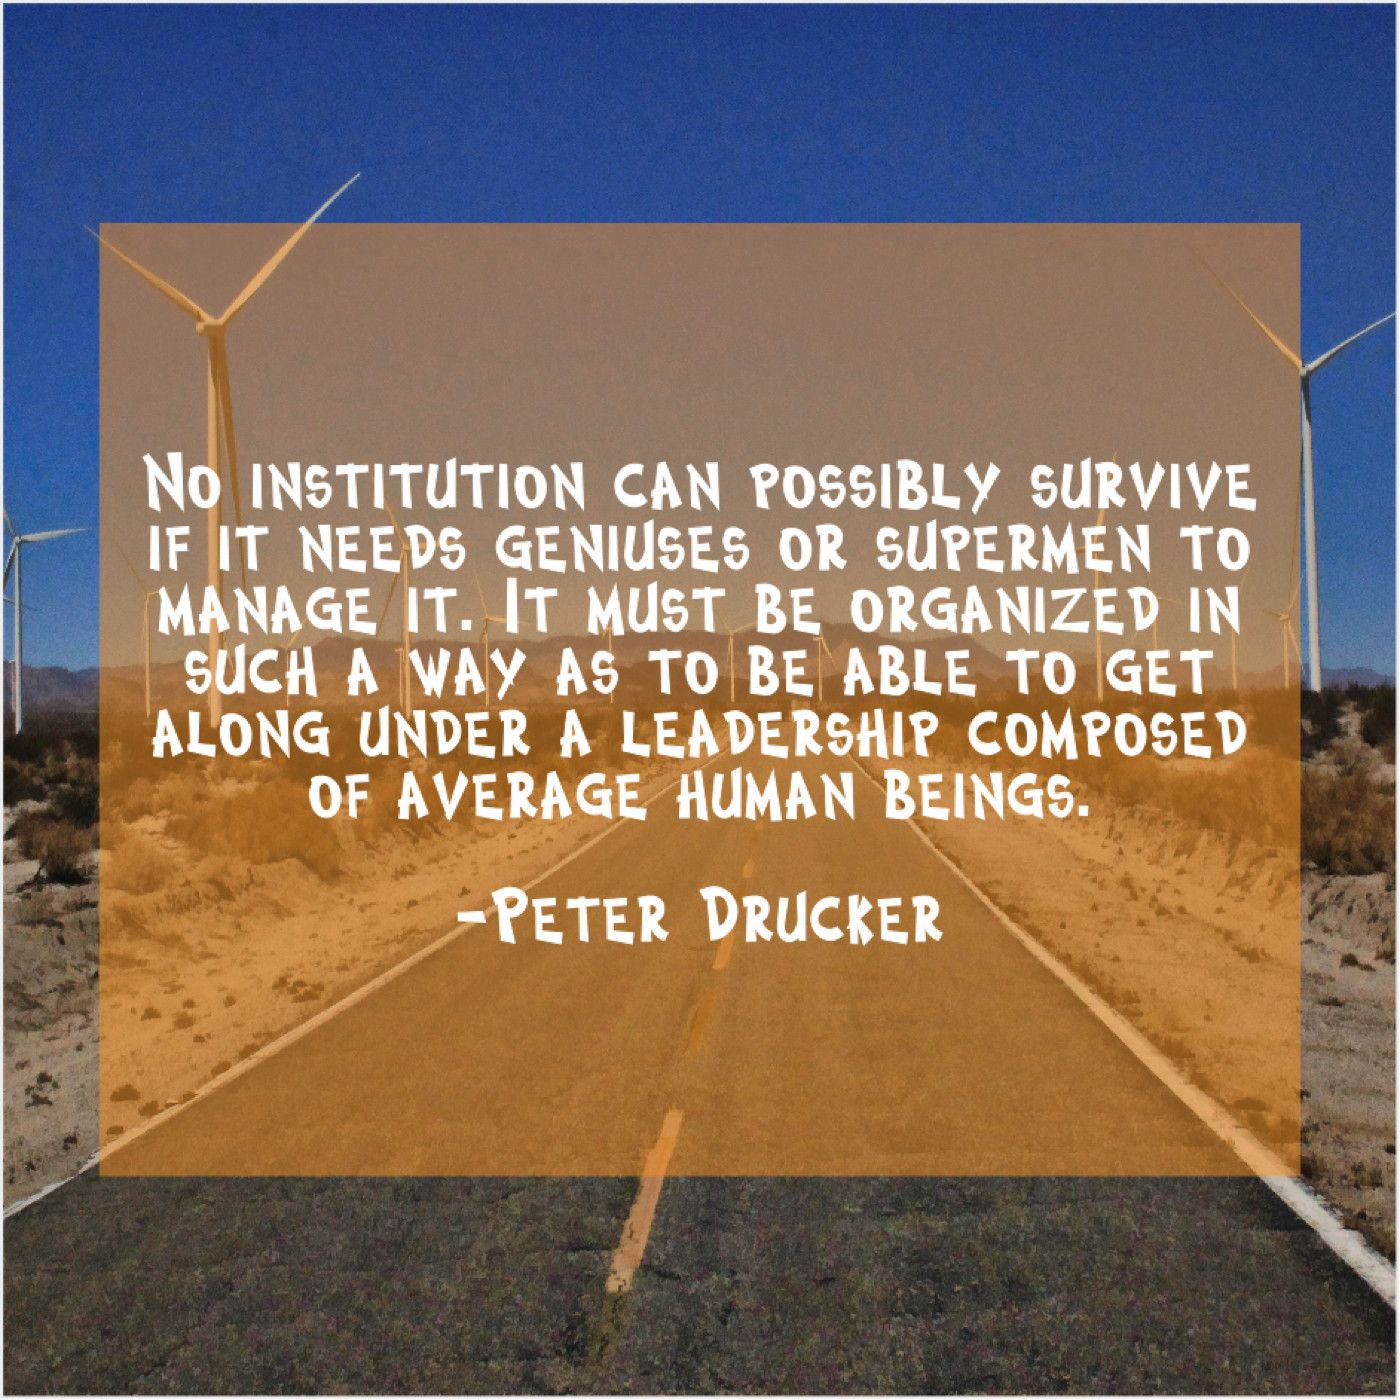 Peter Drucker No institution can possibly survive Peter